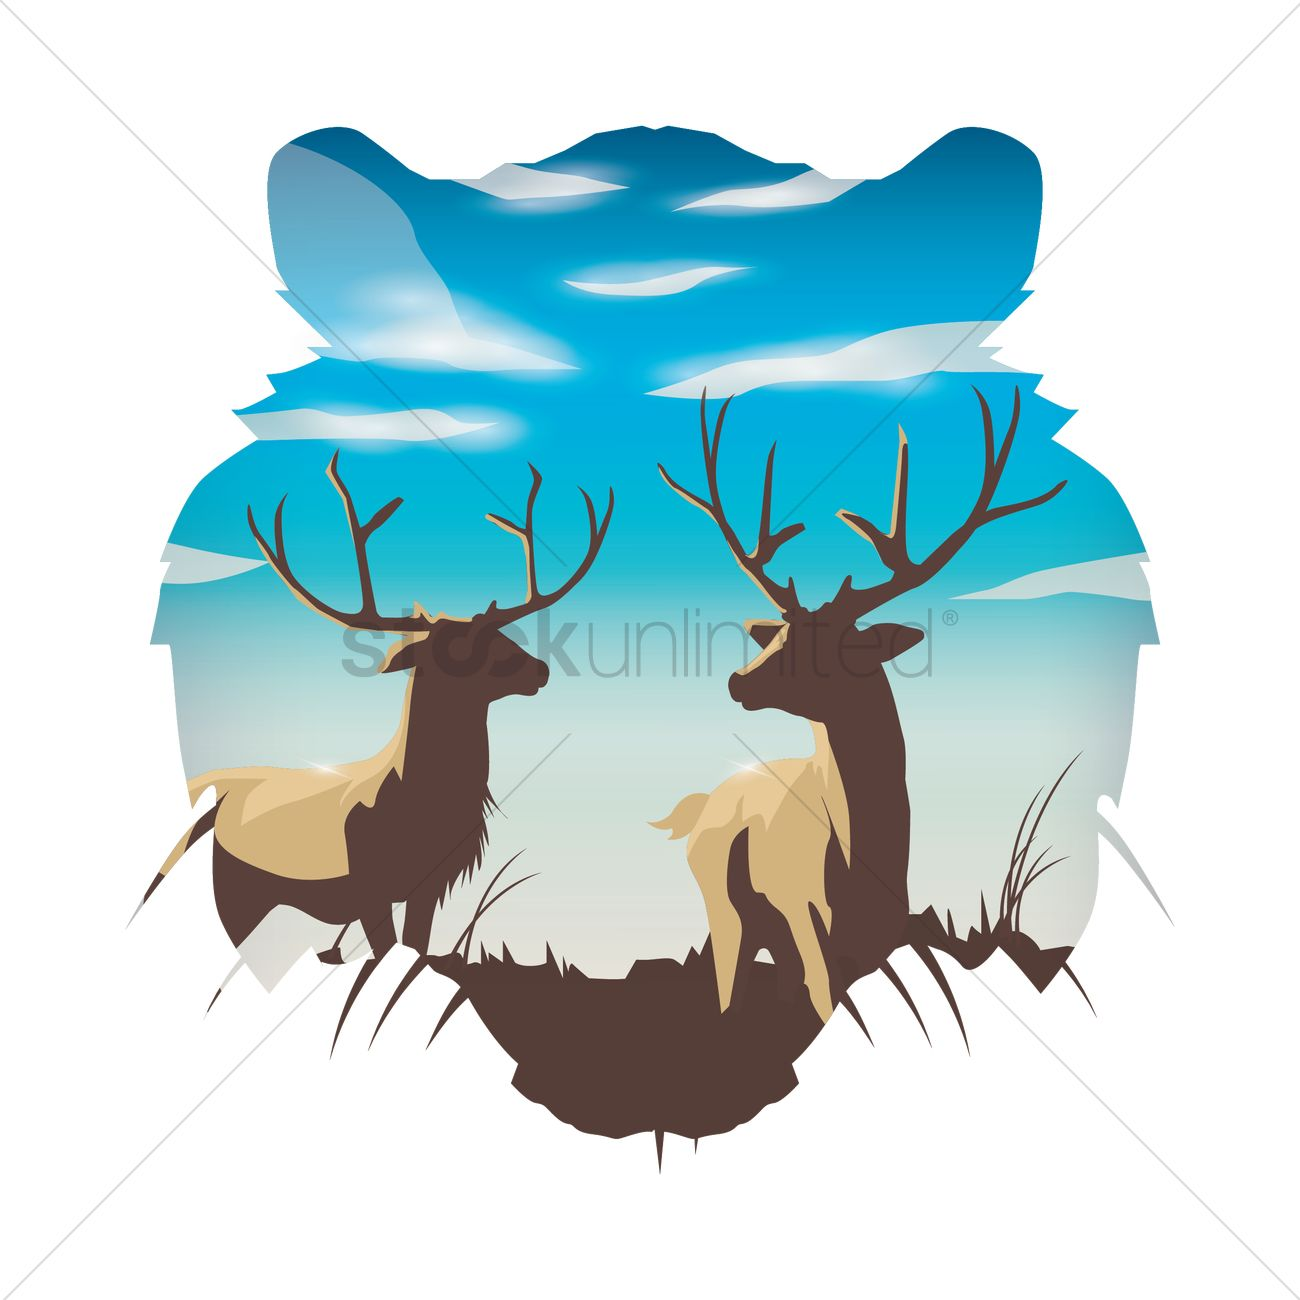 Double exposure of tiger and deers Vector Image.